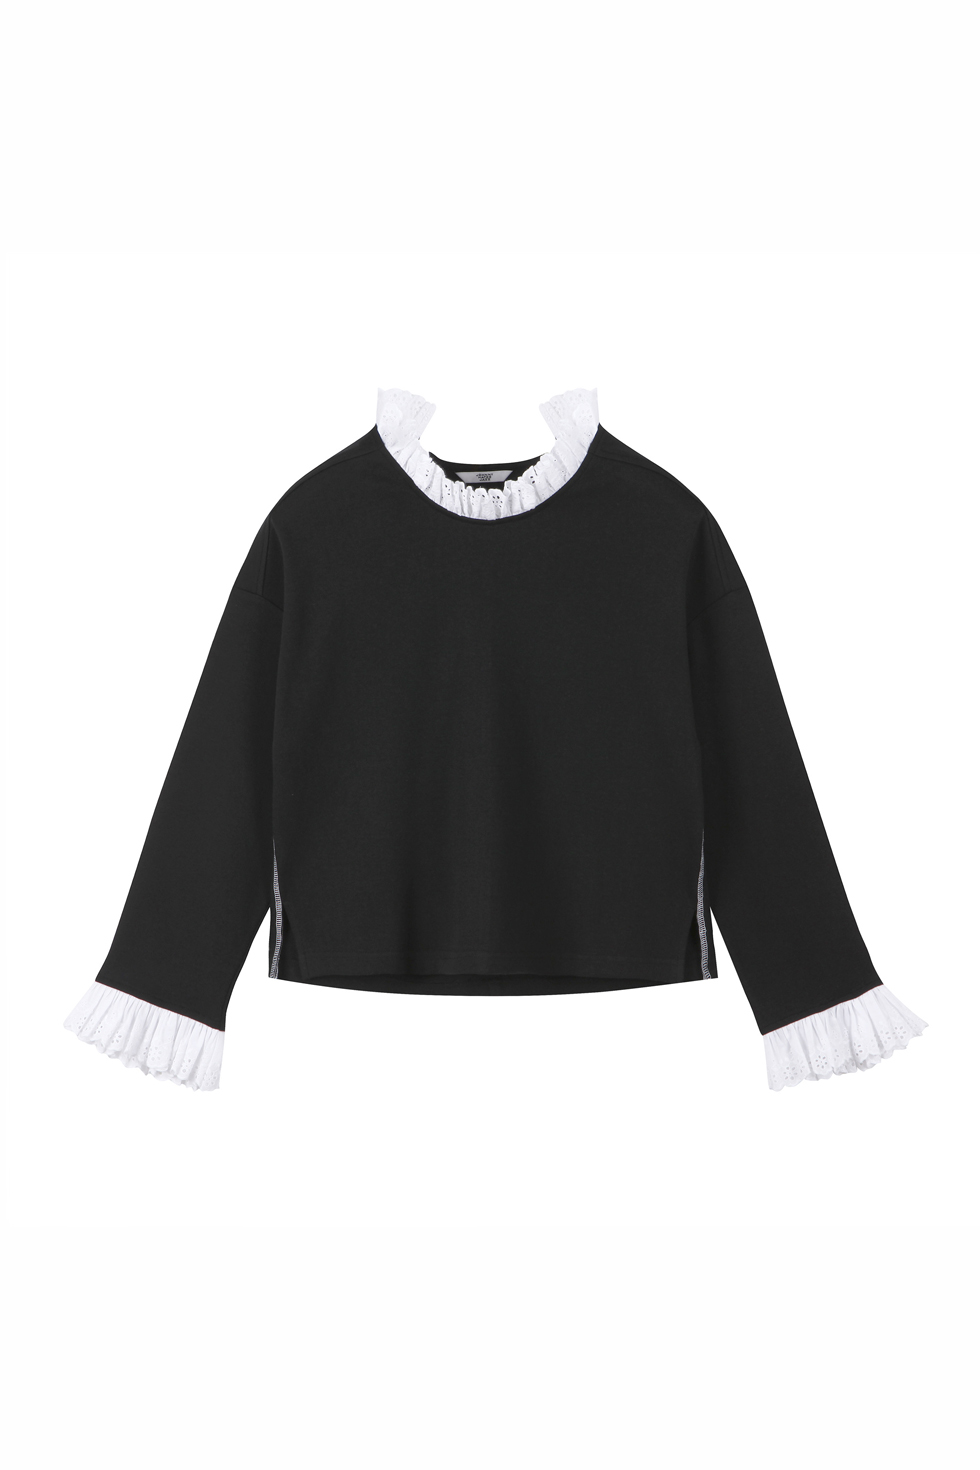 OVERSIZED RUFFLE TOP - BLACK